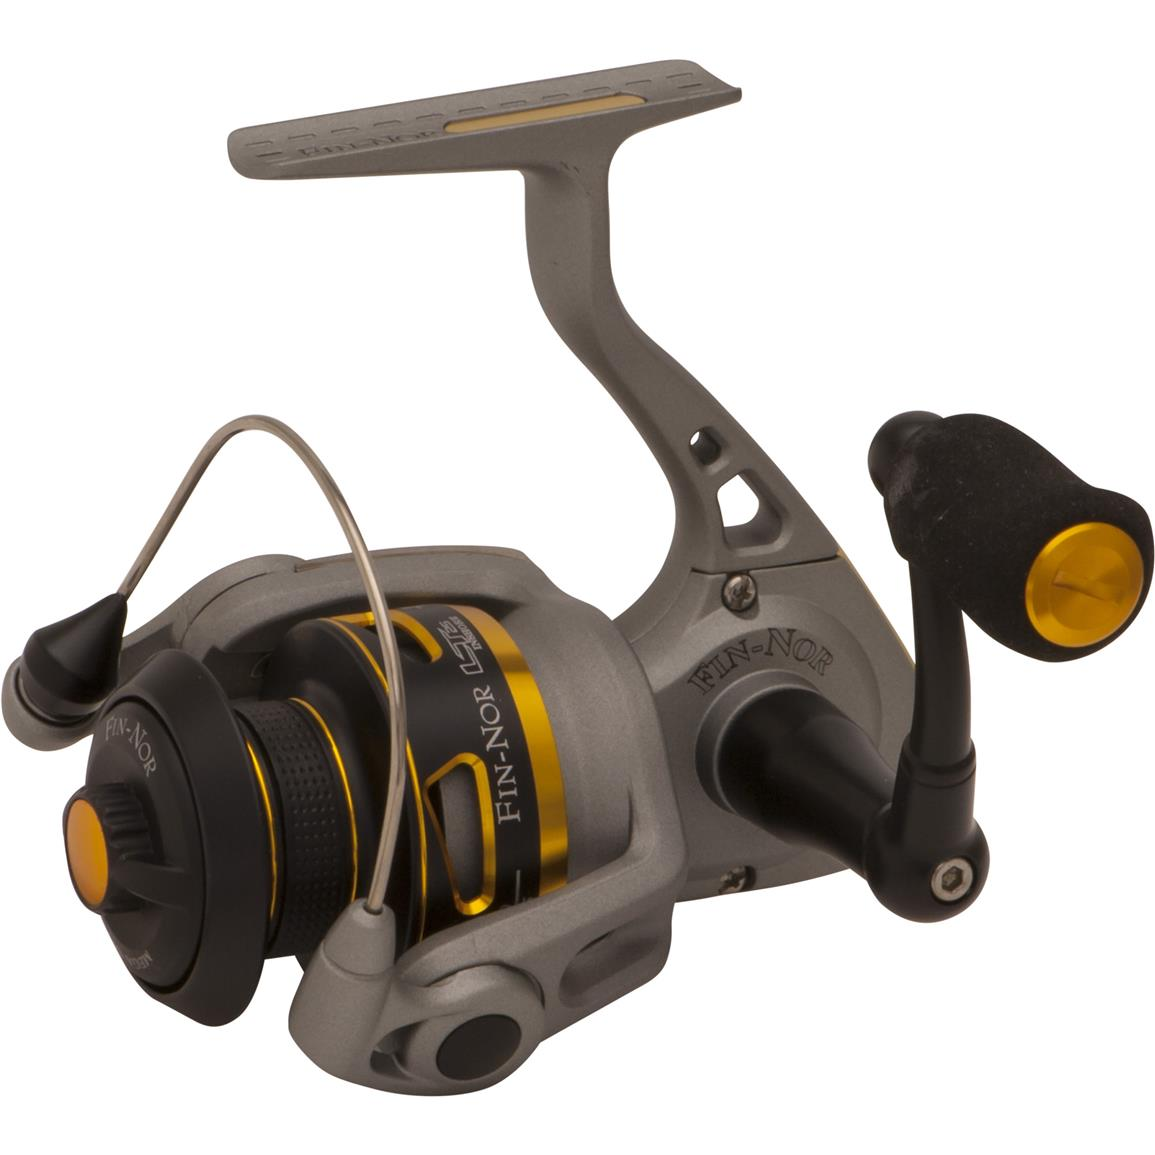 Fin-Nor Lethal Spinning Fishing Reel